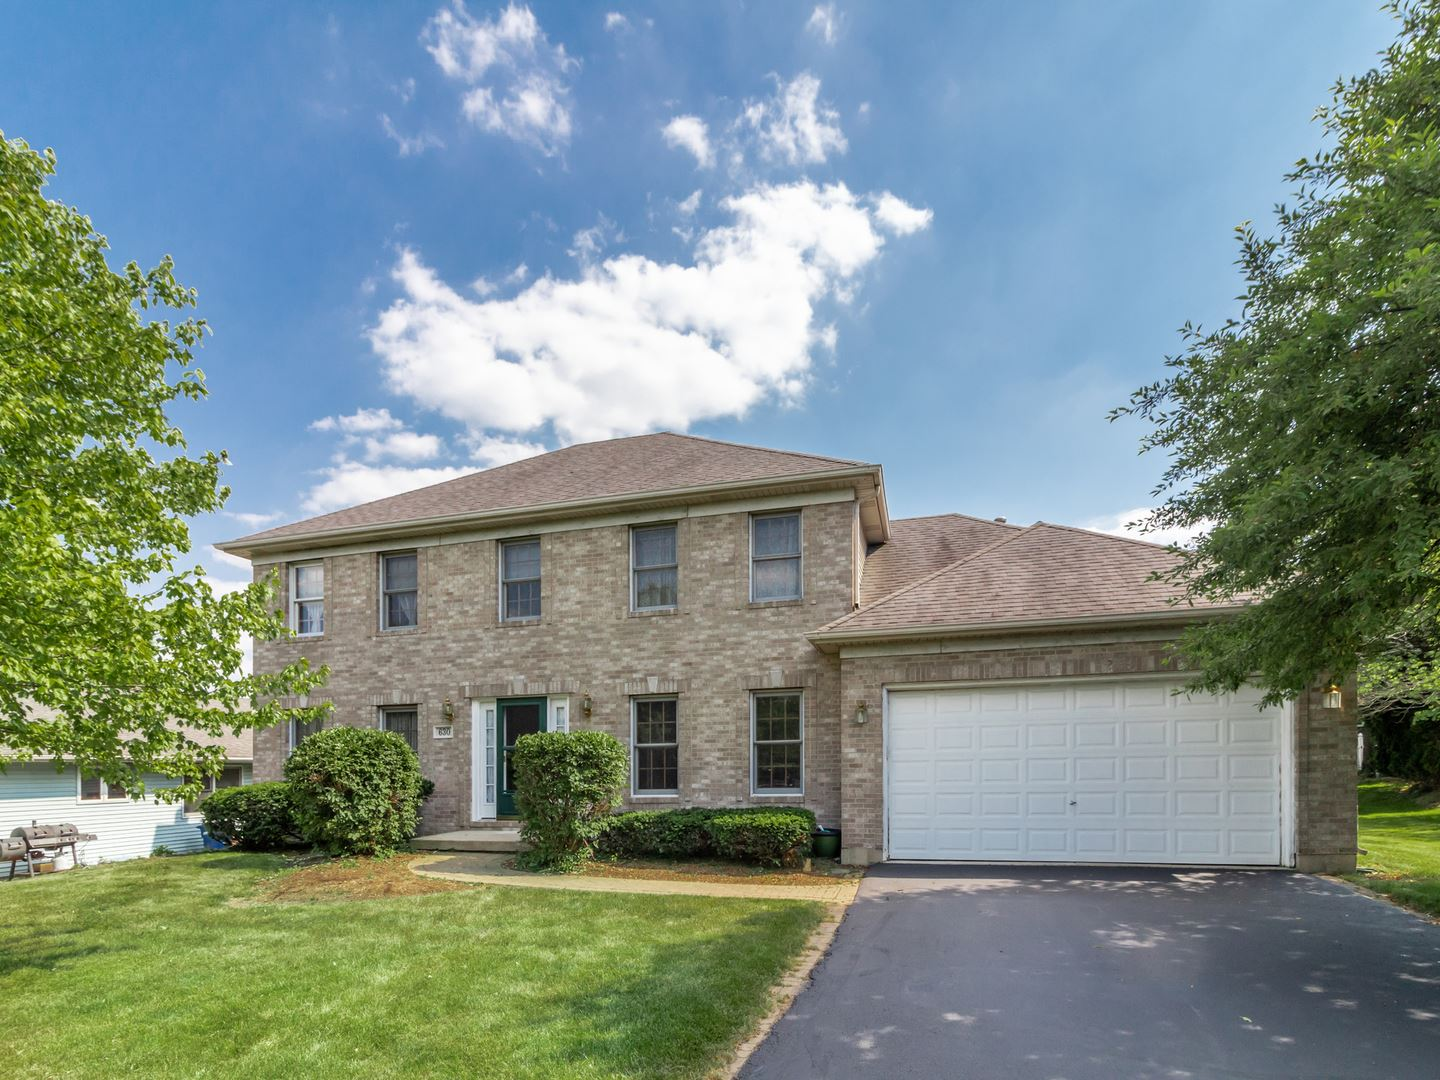 630 Maple Court, Elburn, IL 60119 - #: 10755729